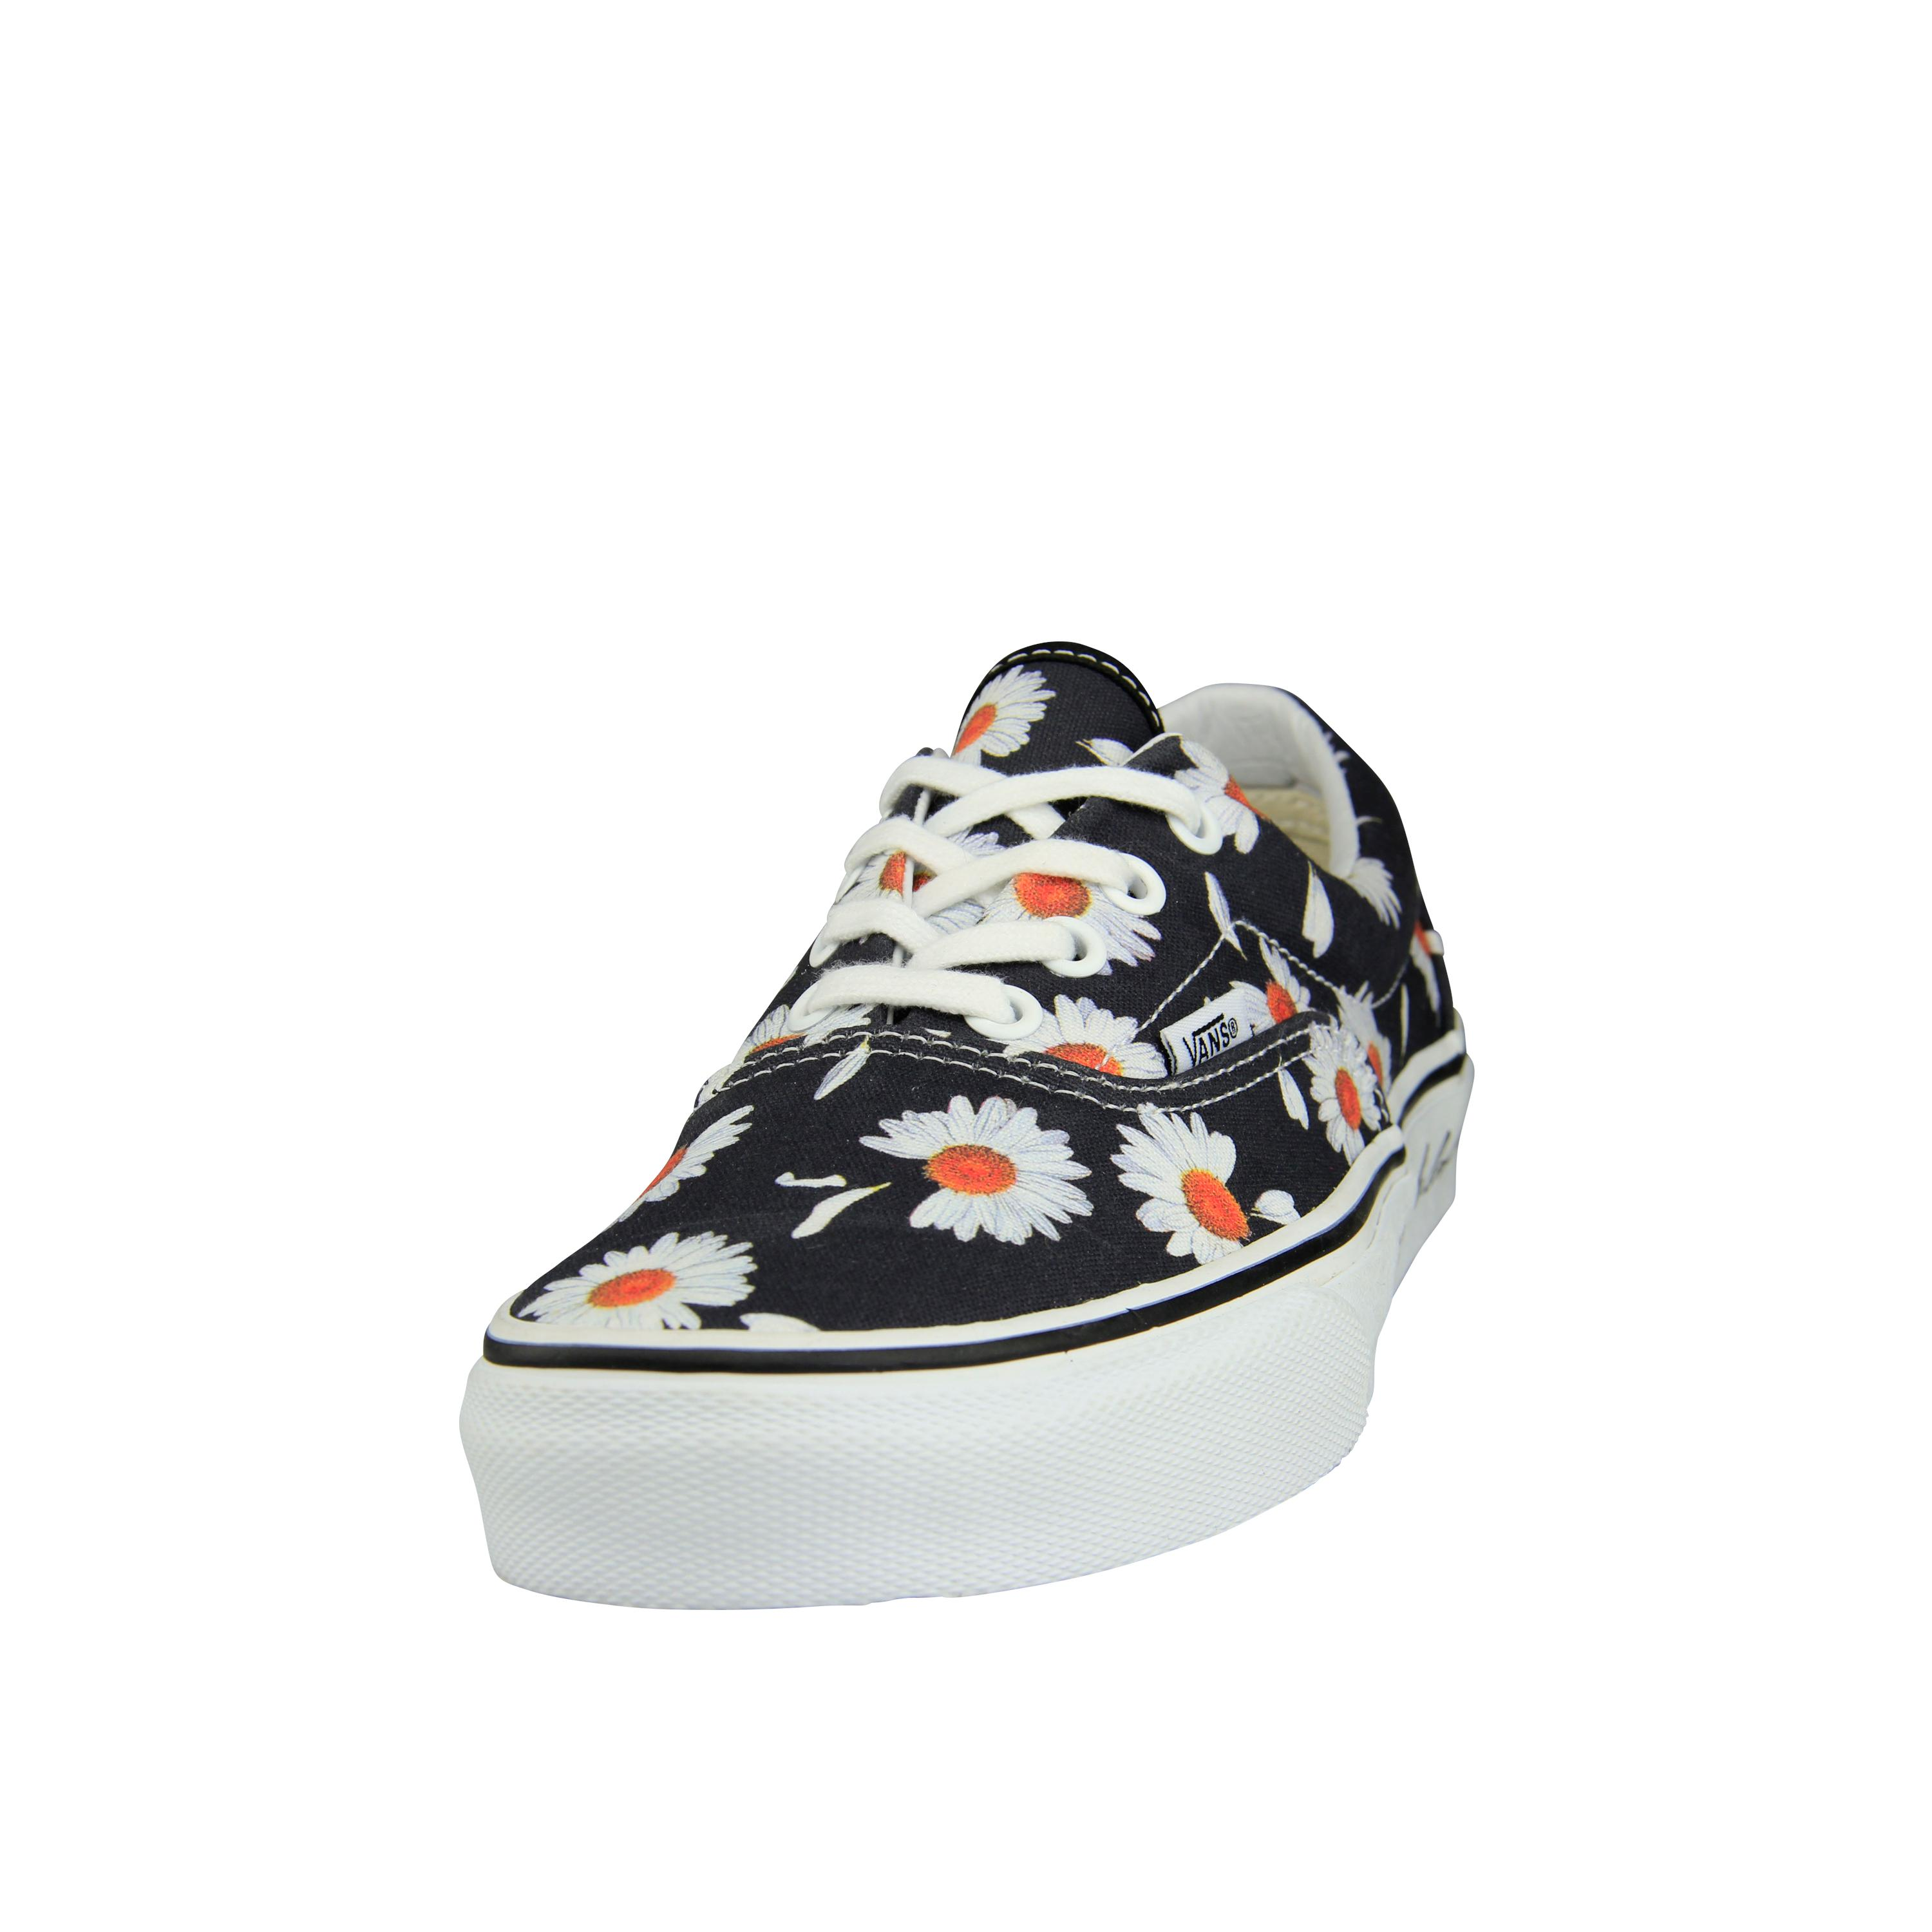 52a7b34fd13 Vans Era Valentines - Foot Locker